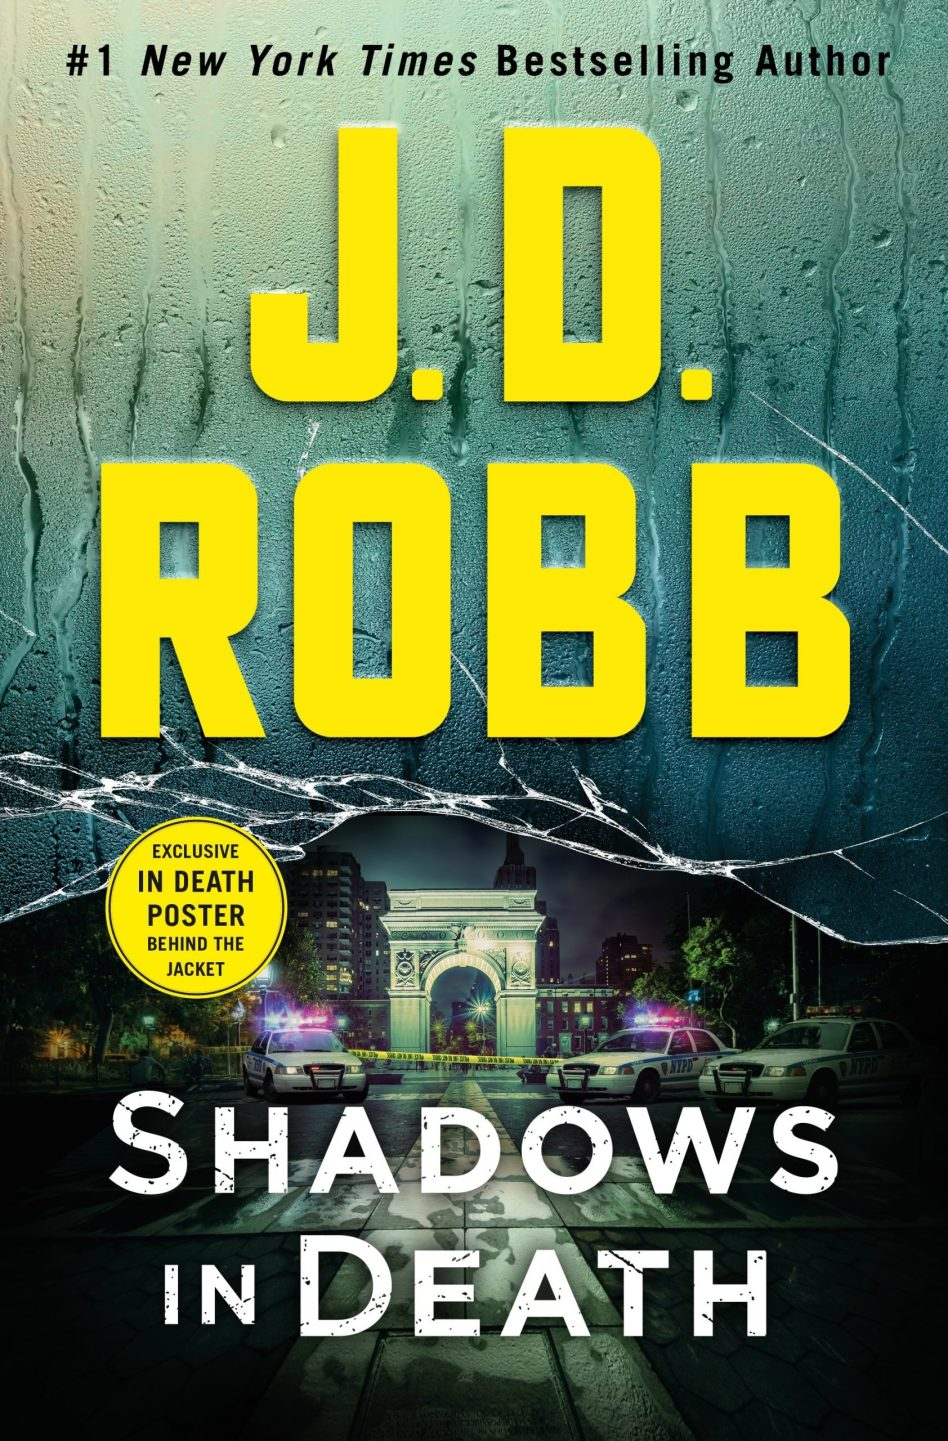 Book Review: Shadows in Death by J.D. Robb